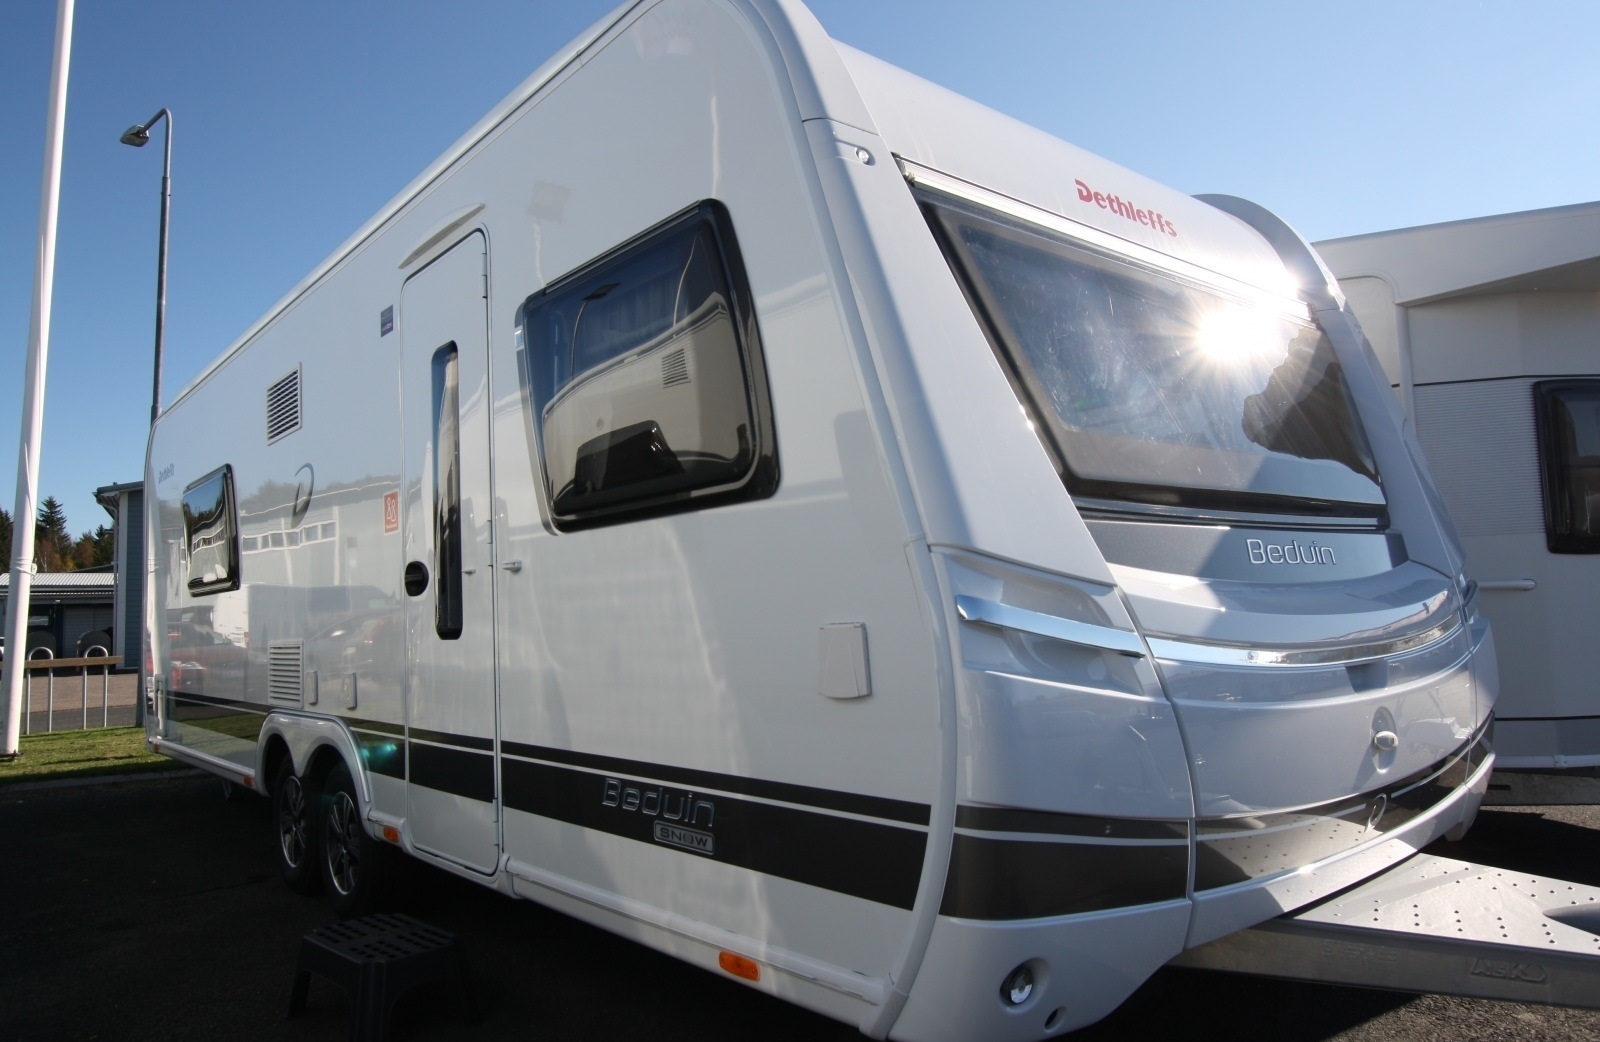 Caravan with ensuites: The Best Companion For Your Tour